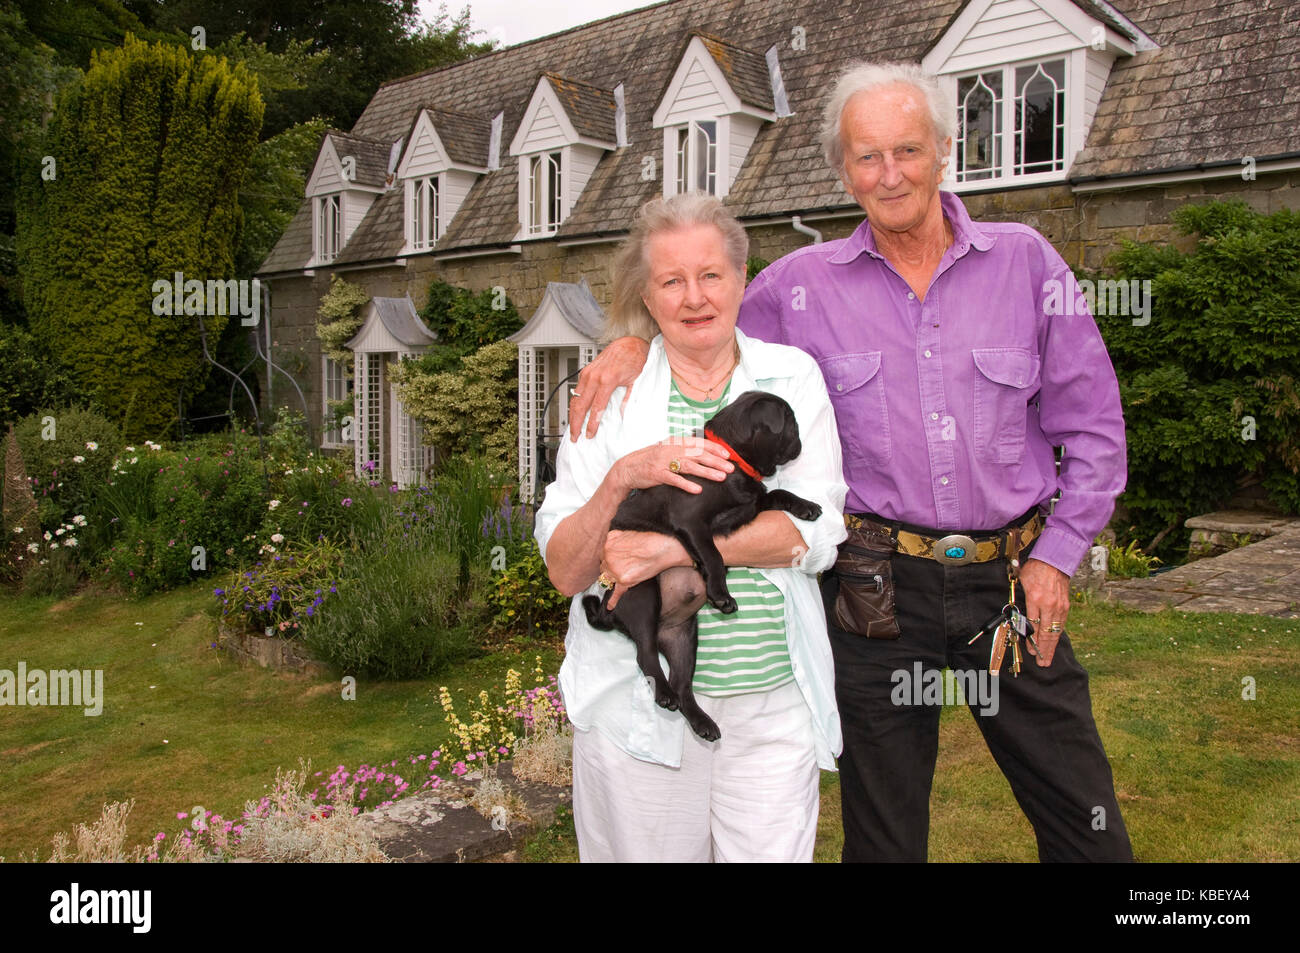 Lord & Lady Christopher Thynne at their home, Britmore House in Wiltshire. - Stock Image